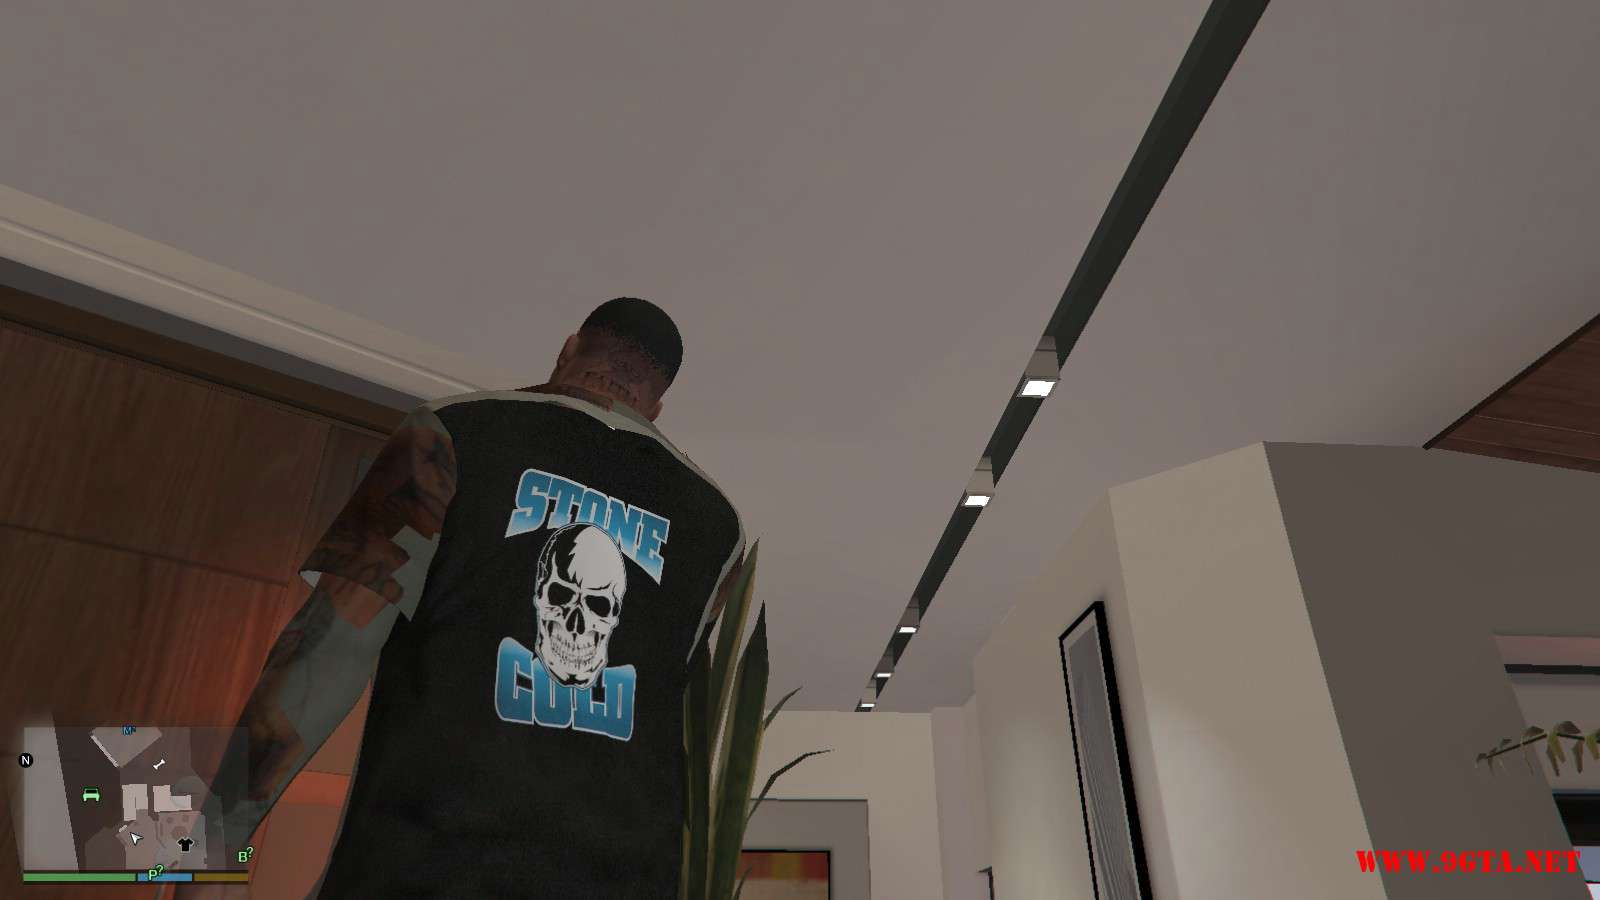 WWE Stone Cold Steve Austin Shirt GTA5 Mods (3)